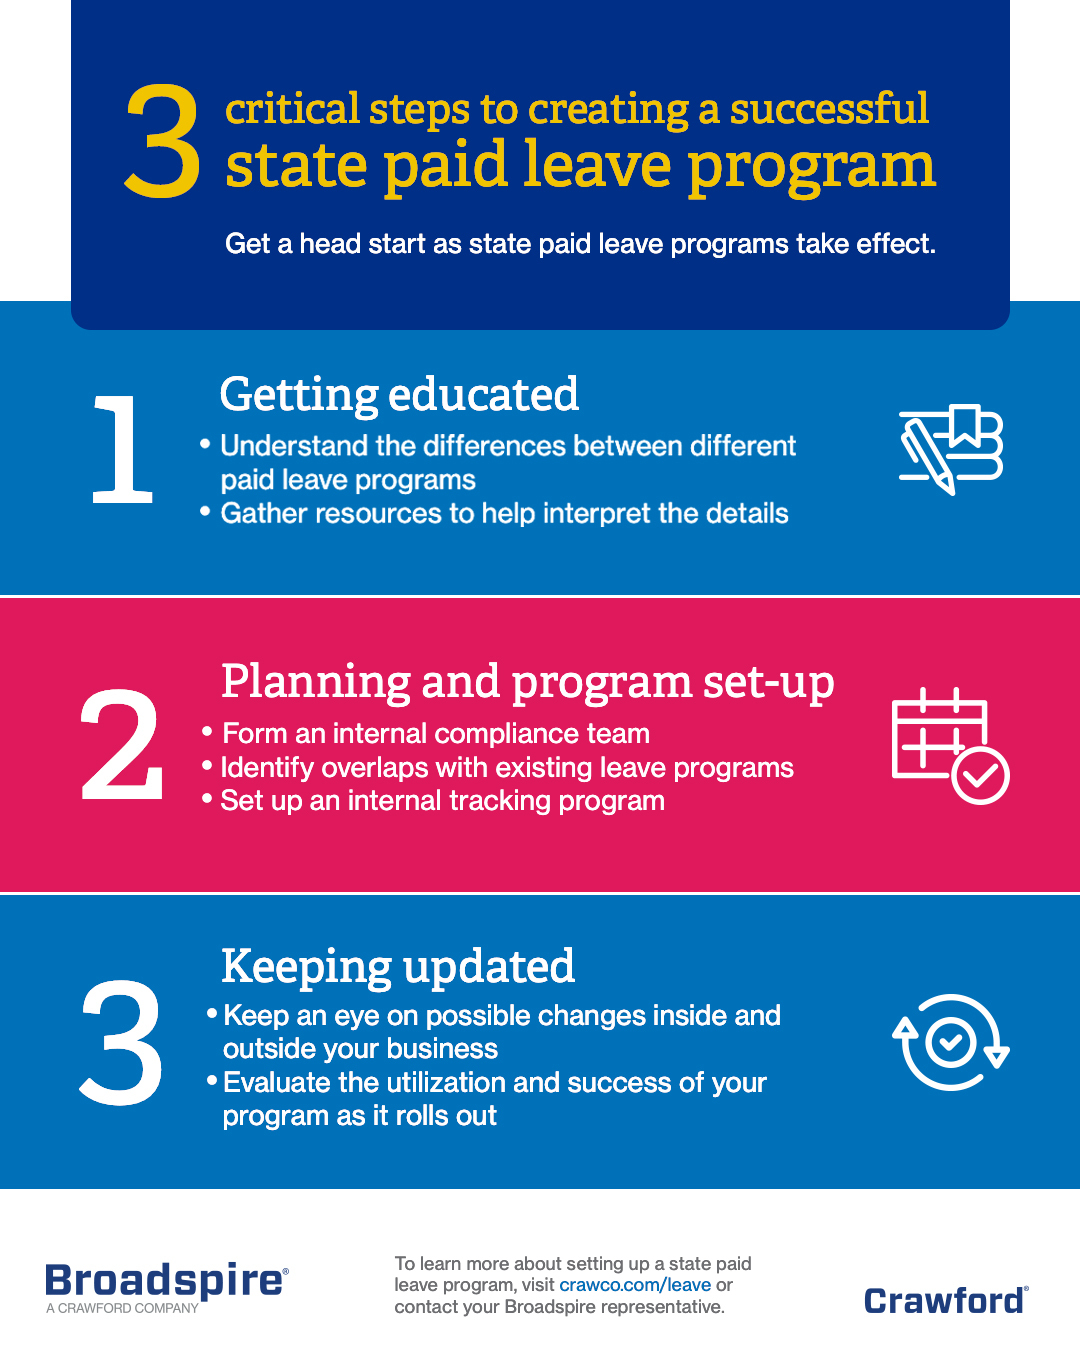 Three critical steps to creating a successful state paid leave program